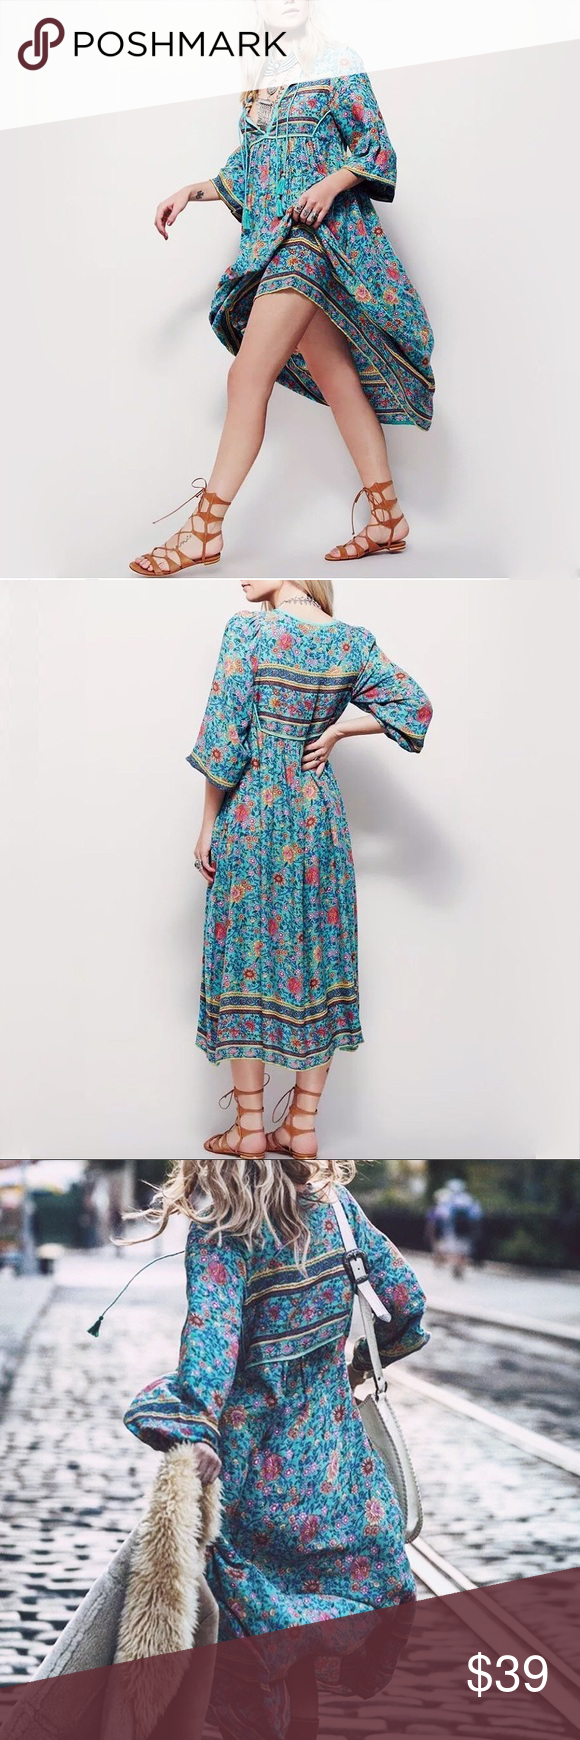 """💠NEW💠""""Blaire"""" Boho Gypsy Maxi Dress, S-XL 💠Material: chiffon. 💠Color: turquoise. 💠Size: refer to chart 💠Feature: tassel tie, floral print, 3/4 sleeves, maxi 💠Care: can be machine washed. 💠This is wholesale price, ❌trade ❌low ball 💠Please allow 3-4 business days of handling. Thank you! Dresses Maxi"""